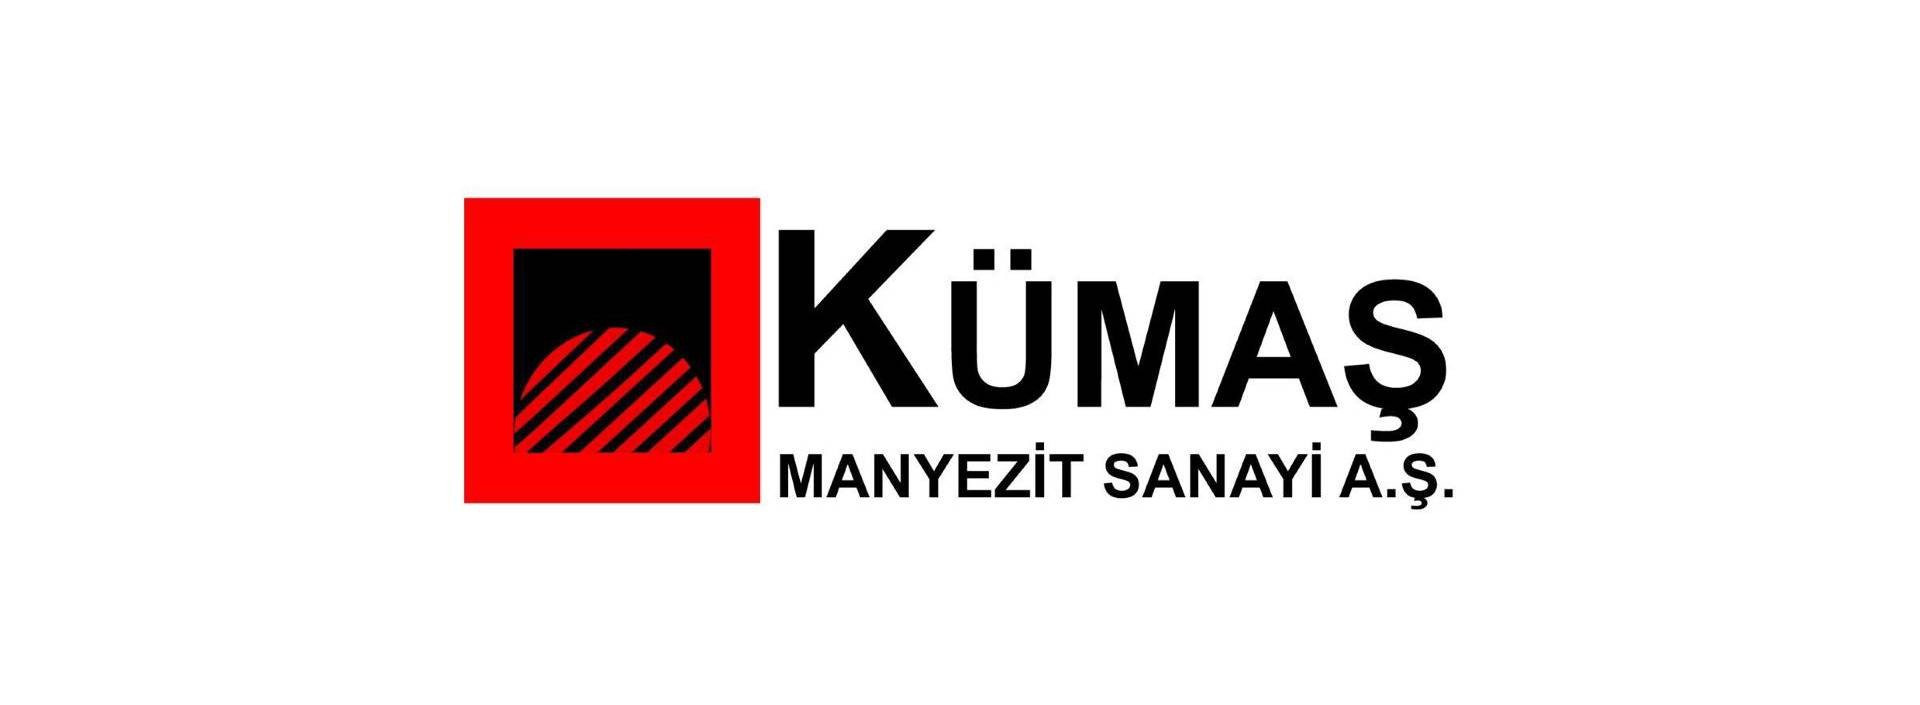 Agreement signed for the sale of Kümaş Manyezit